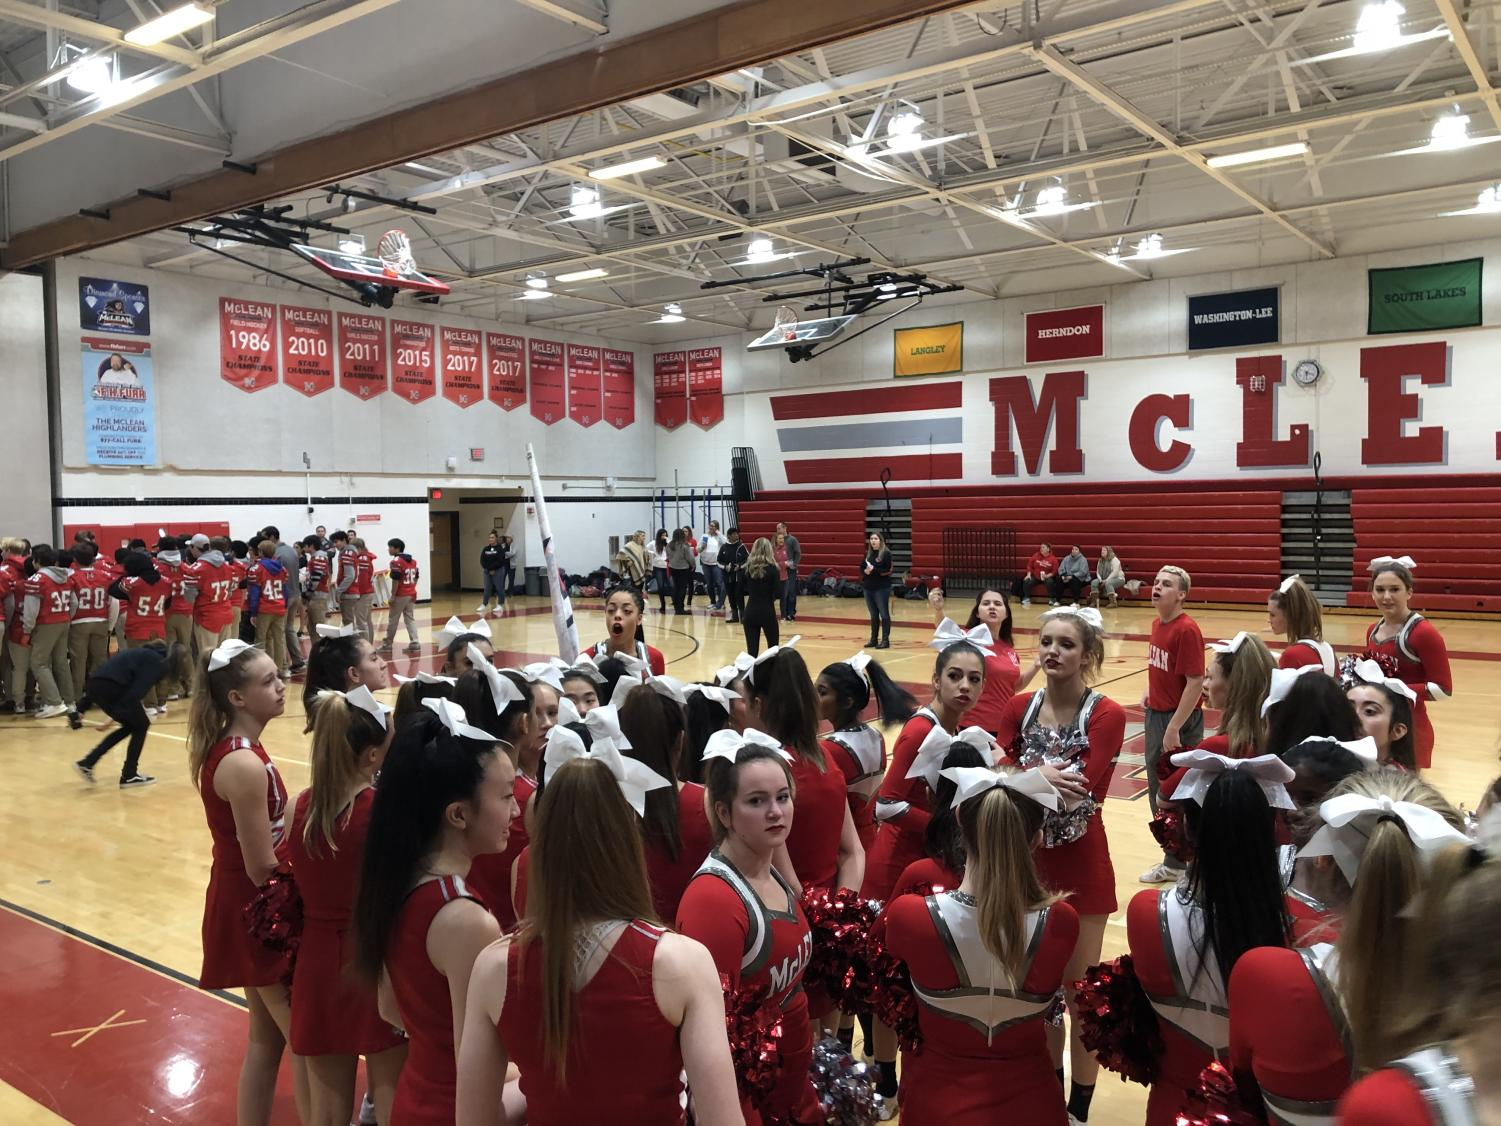 McLean's Cheer team prepares for pep rally. Photo by Kyle Hawley.